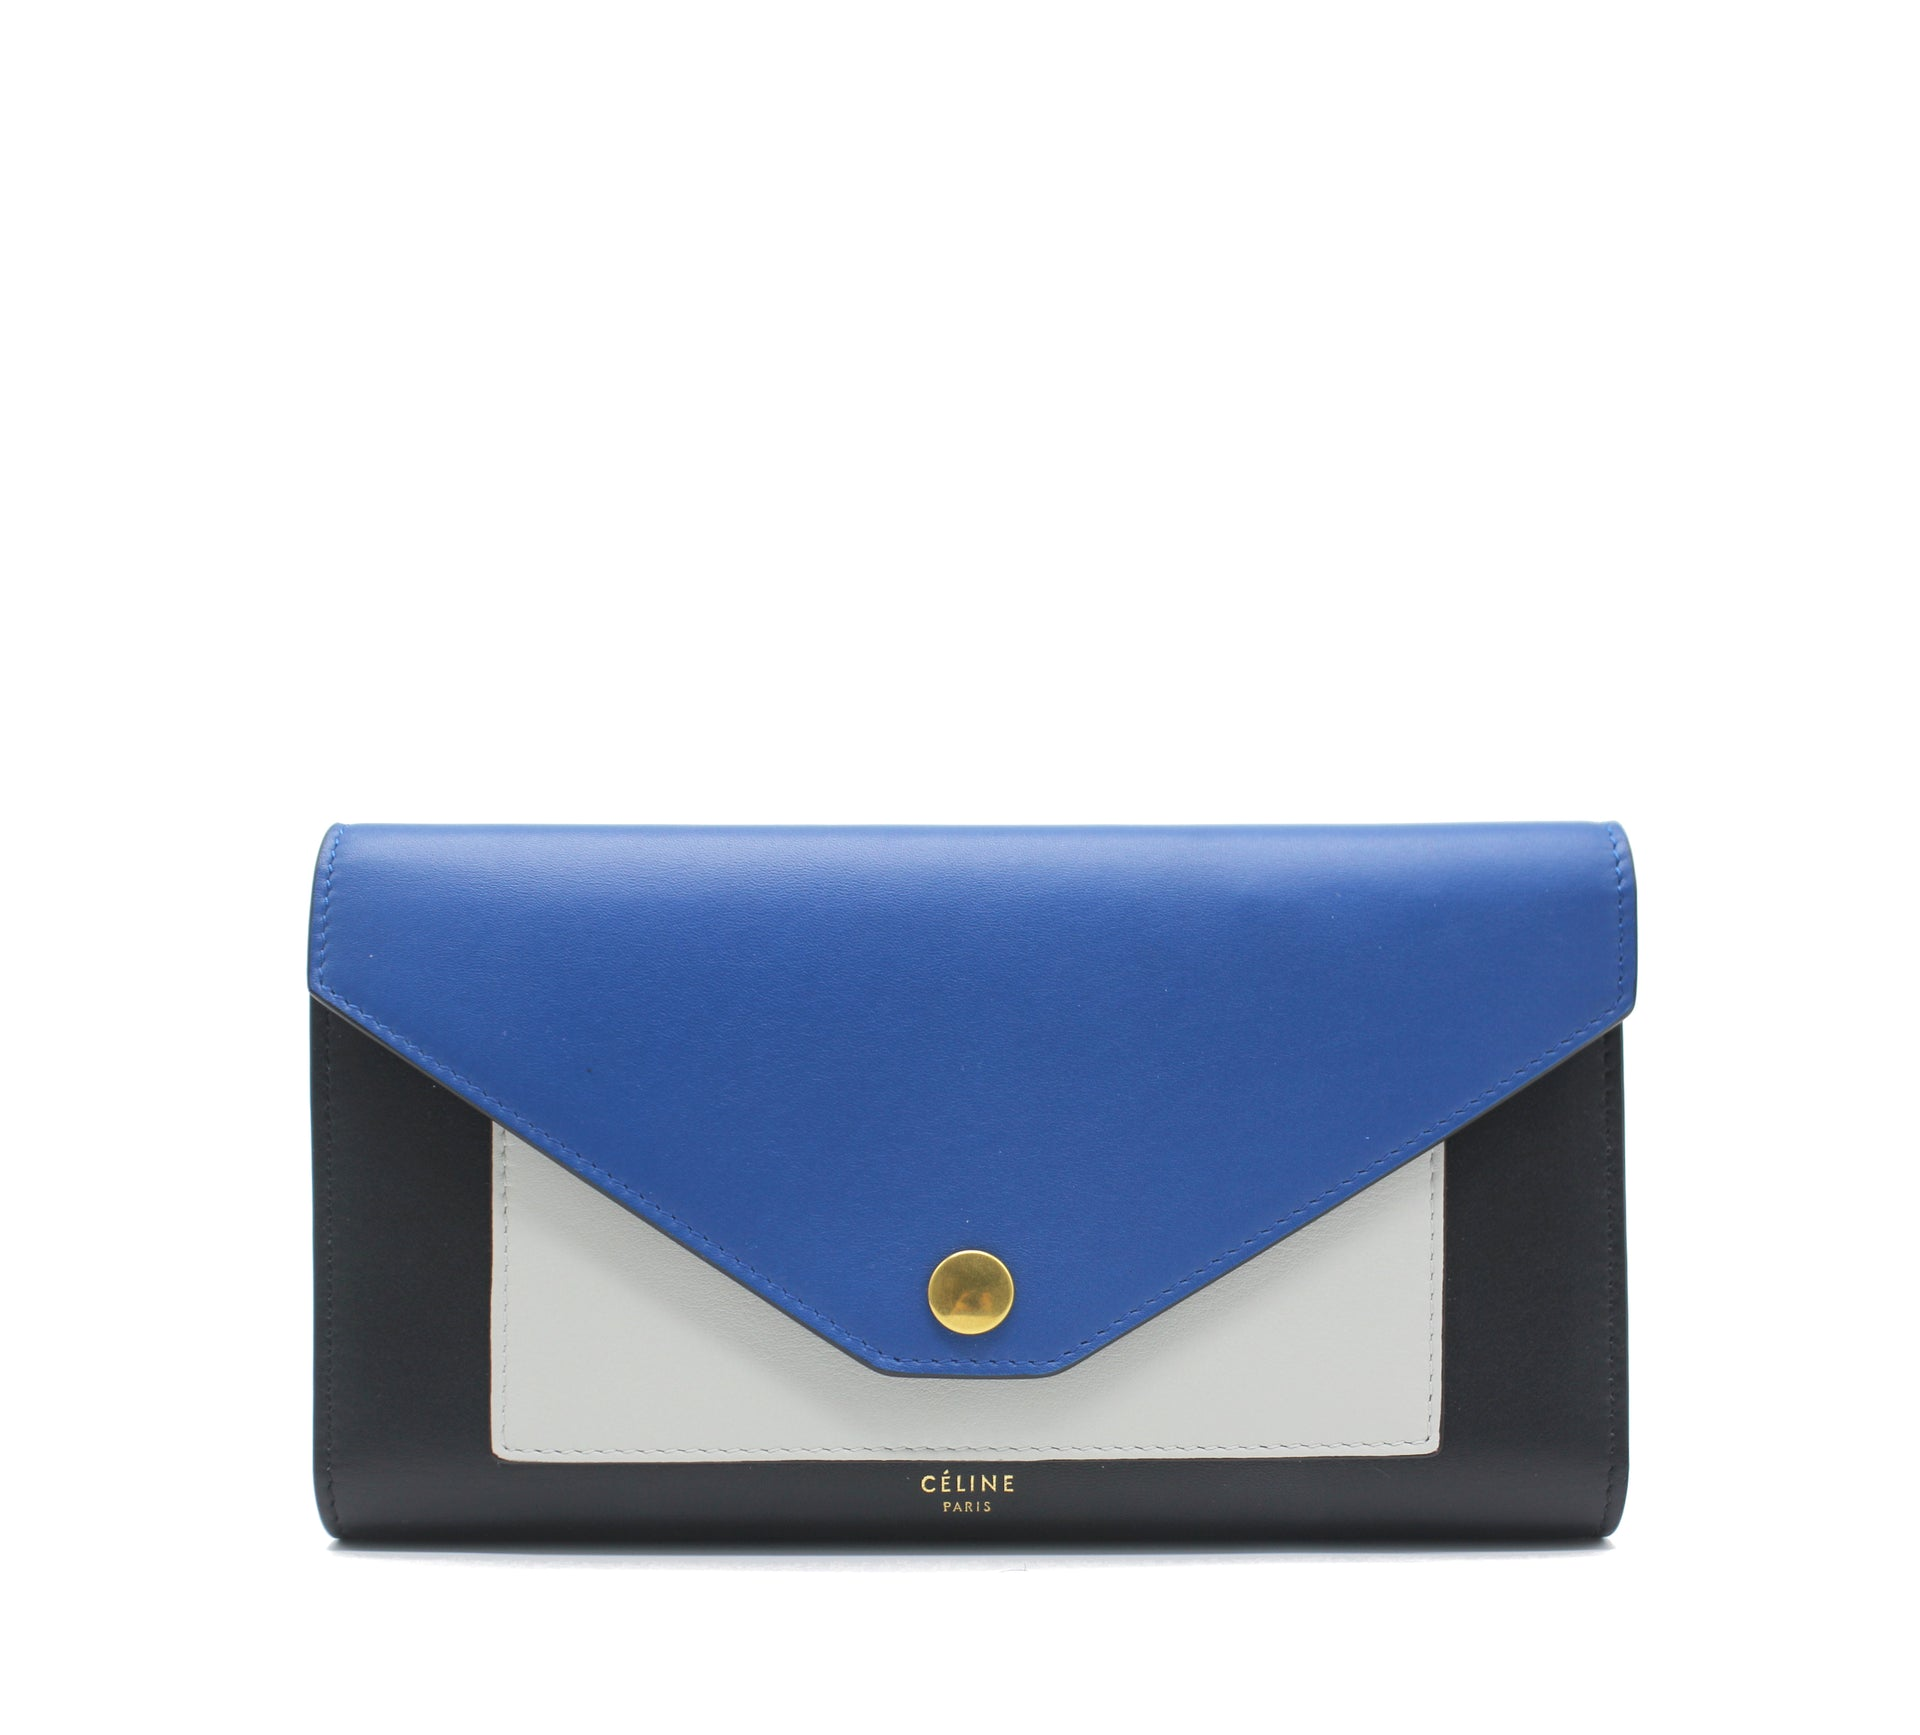 Celine Tricolor Multifunction Pocket Wallet